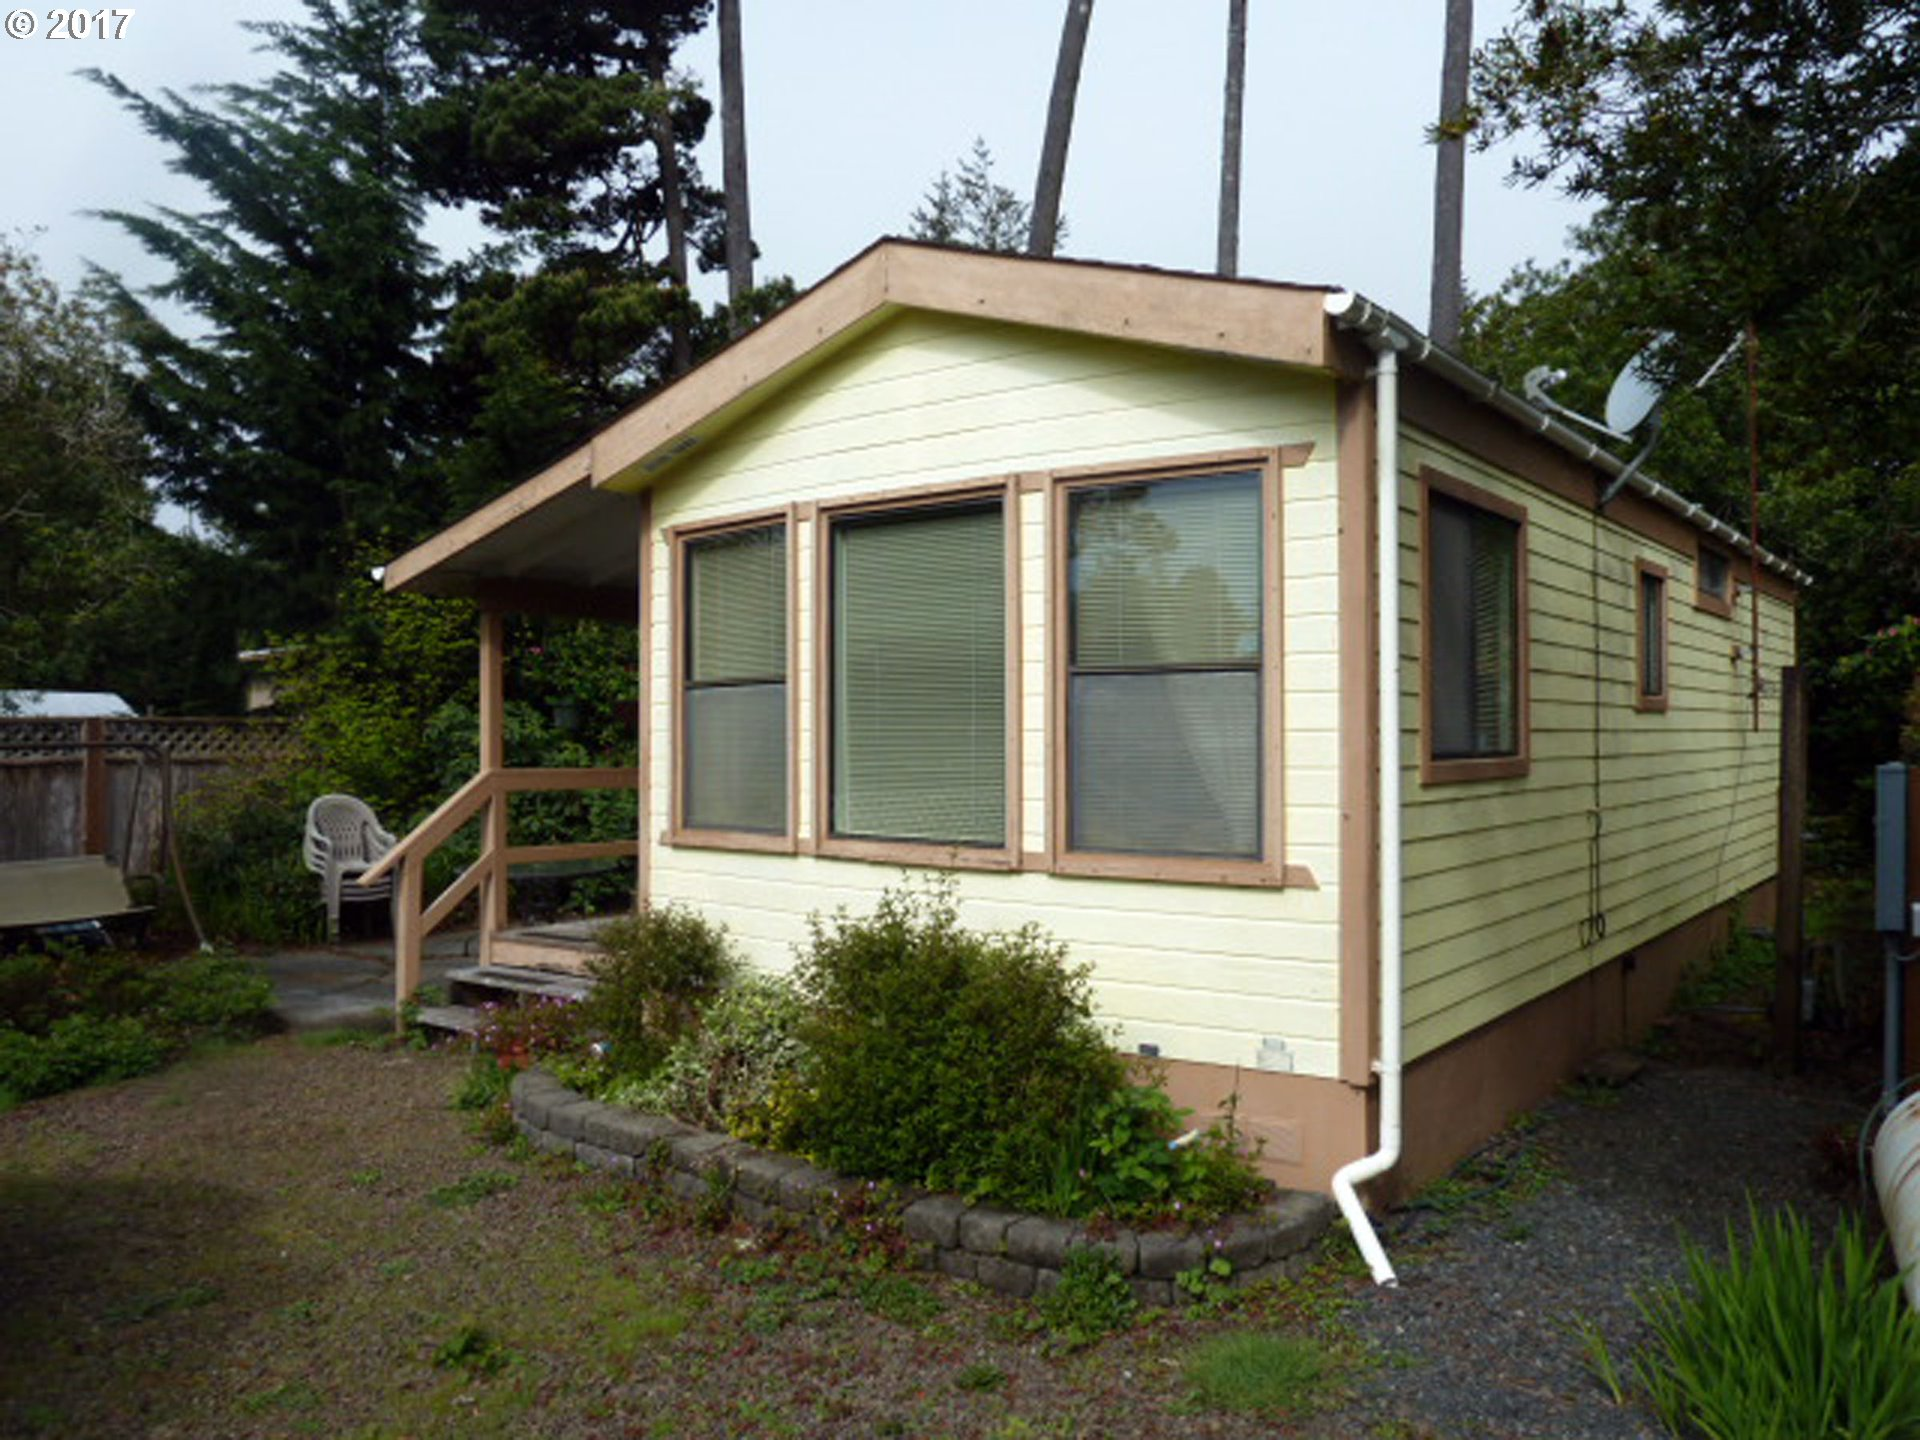 185 HUCKLEBERRY LN Florence, OR 97439 - MLS #: 17601468